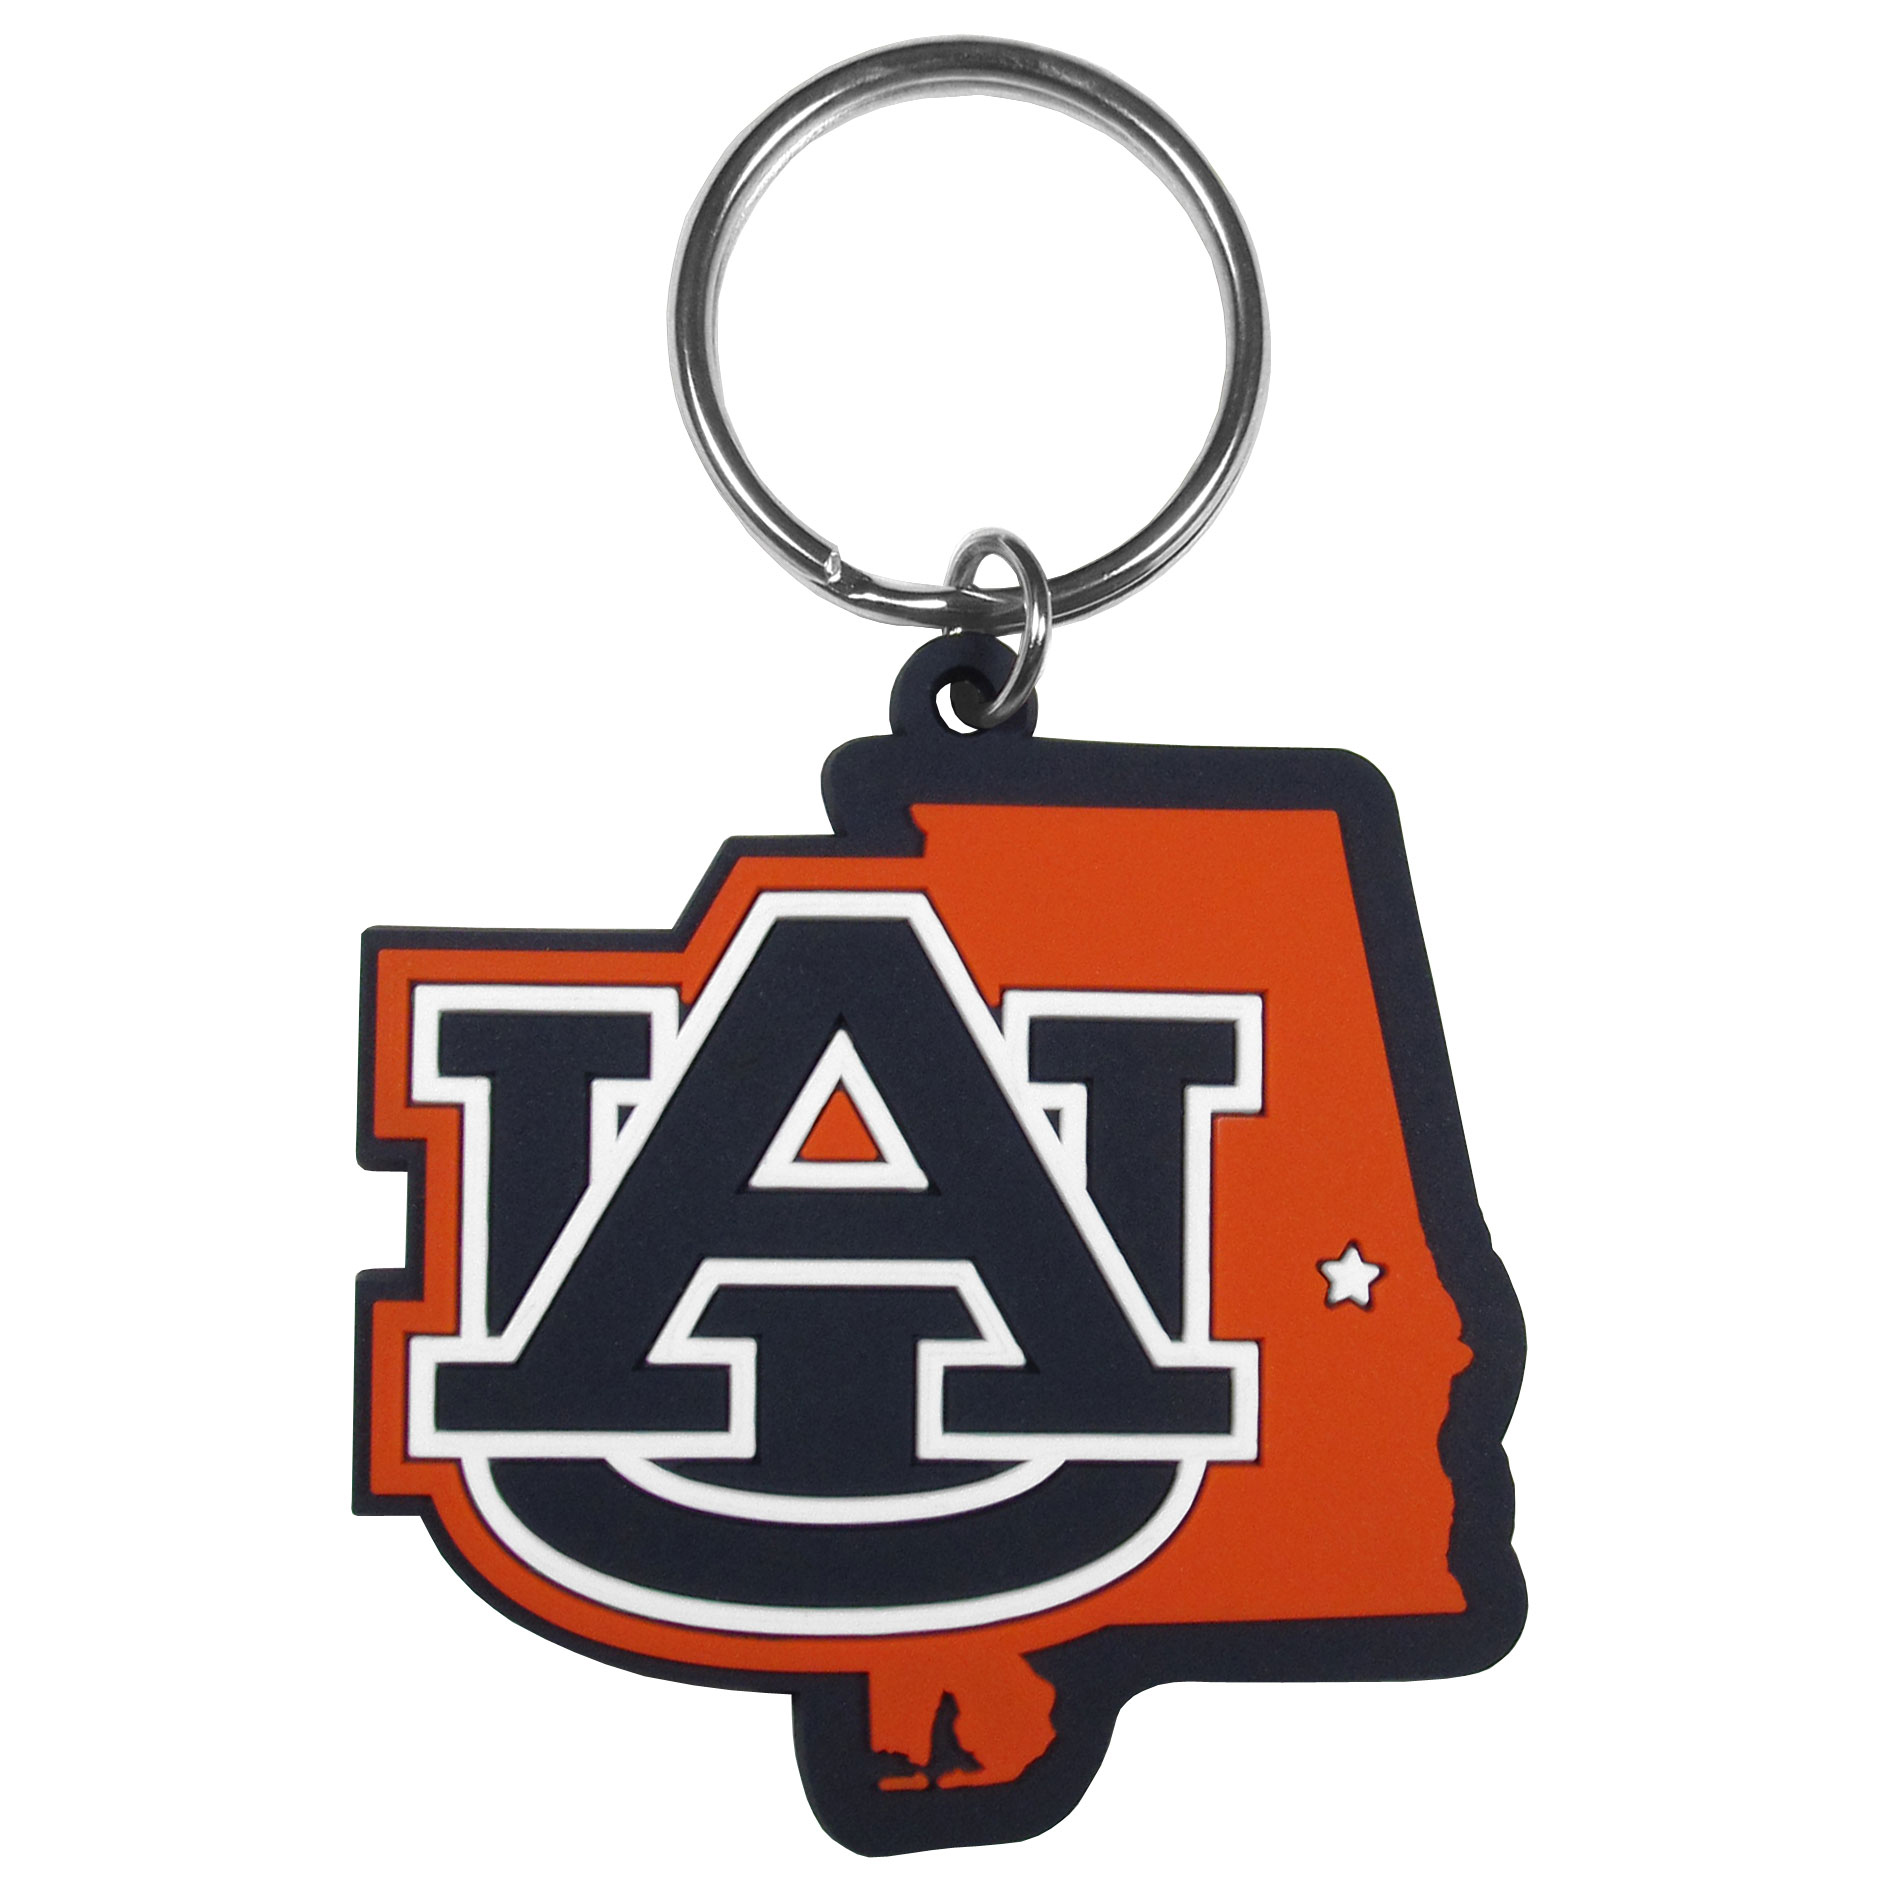 Auburn Tigers Home State Flexi Key Chain - Our flexible Auburn Tigers key chains are a fun way to carry your team with you. The pliable rubber material is extremely durable and the layered colors add a great 3D look to the key chain. This is really where quality and a great price meet to create a true fan favorite.